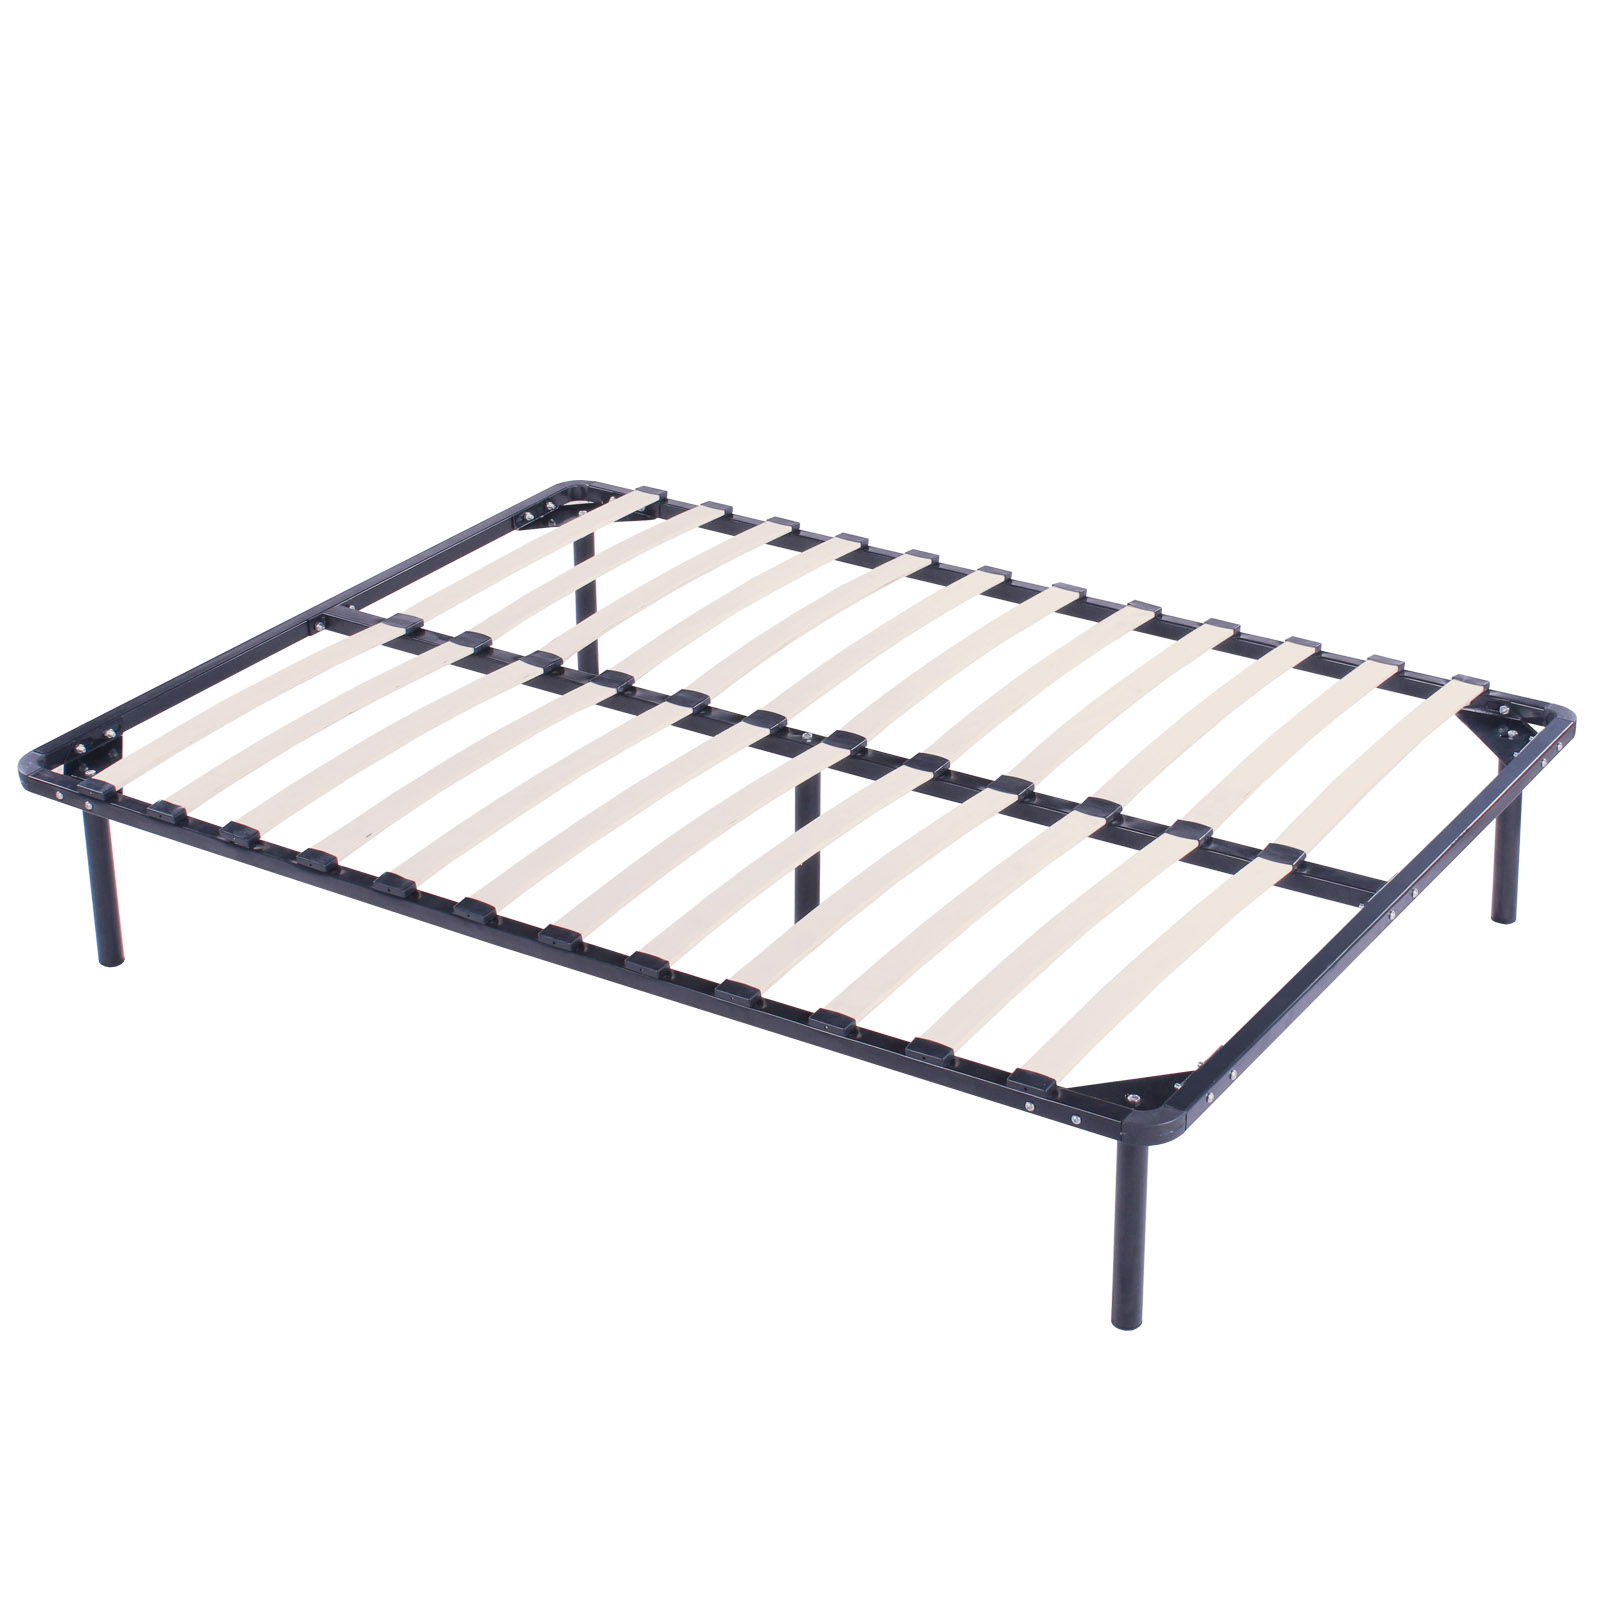 full size wood slats metal bed frame platform mattress beds frame sturdy great ebay. Black Bedroom Furniture Sets. Home Design Ideas